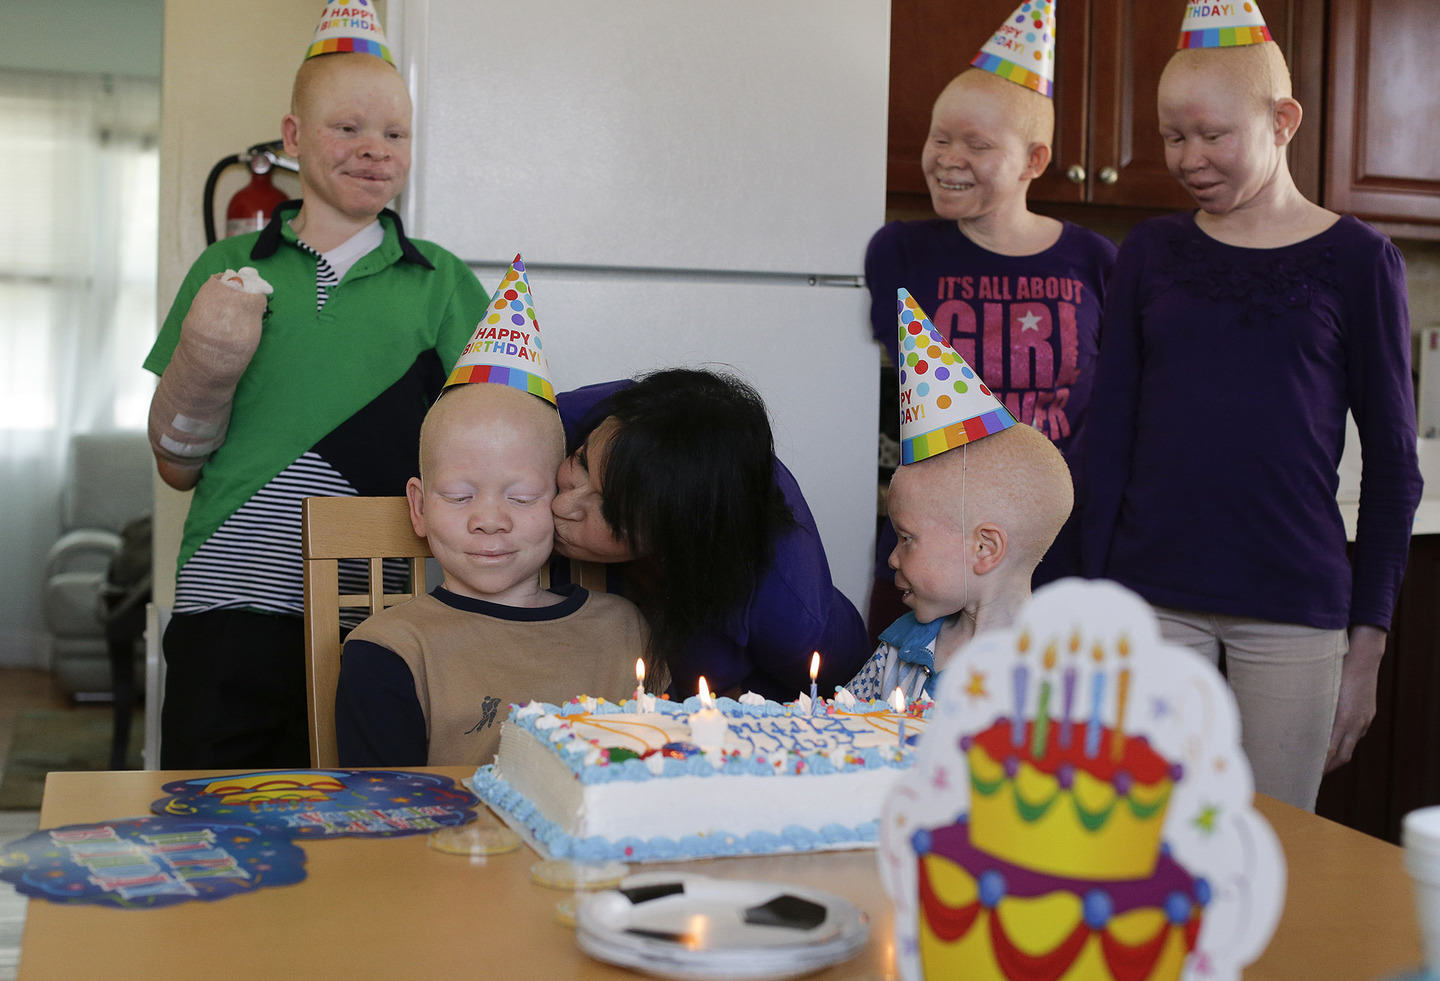 UNILAD albino3 Hunted Albino Kids From Tanzania Find Happy New Life In New York